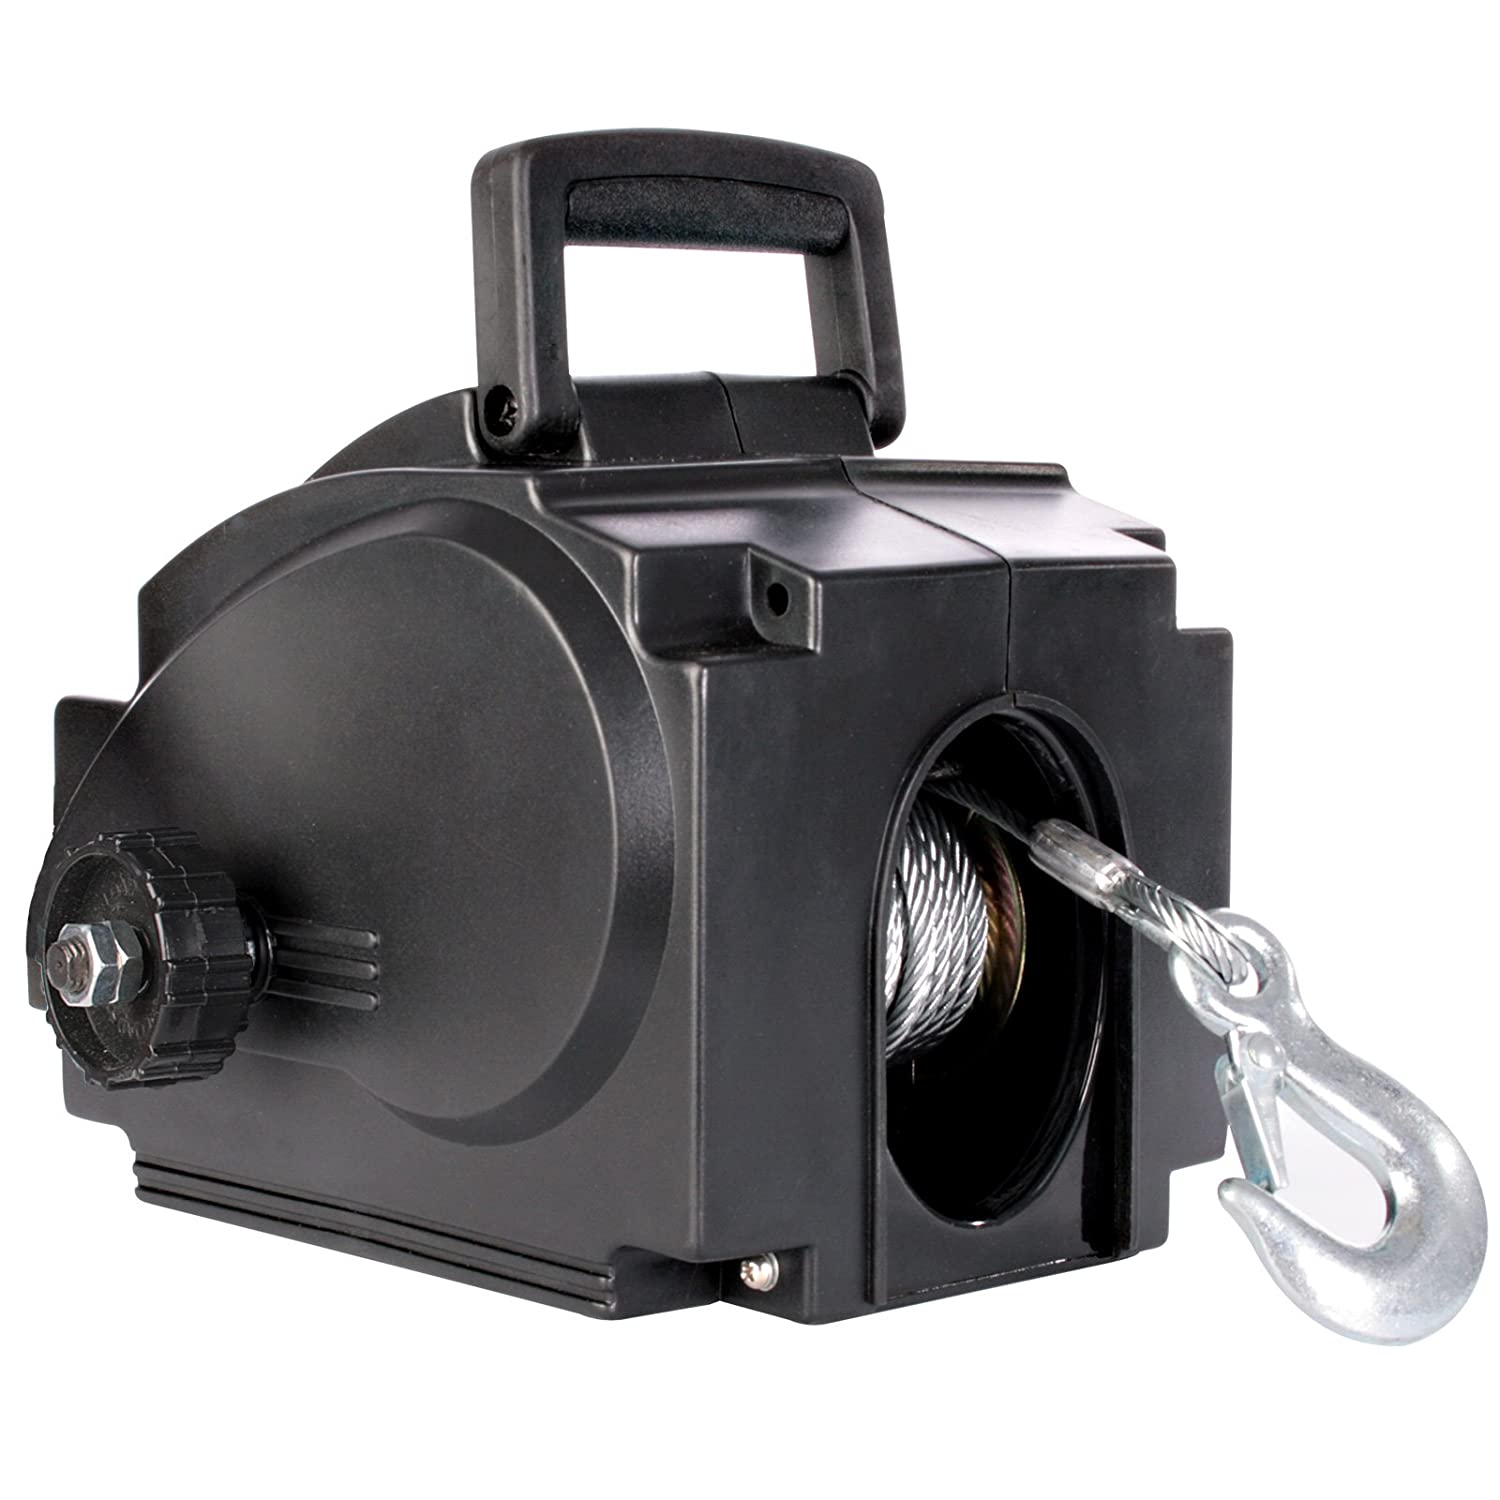 Electric Winch 900kg Capacity 12V Pulling Force 2000 lbs Timbertech®